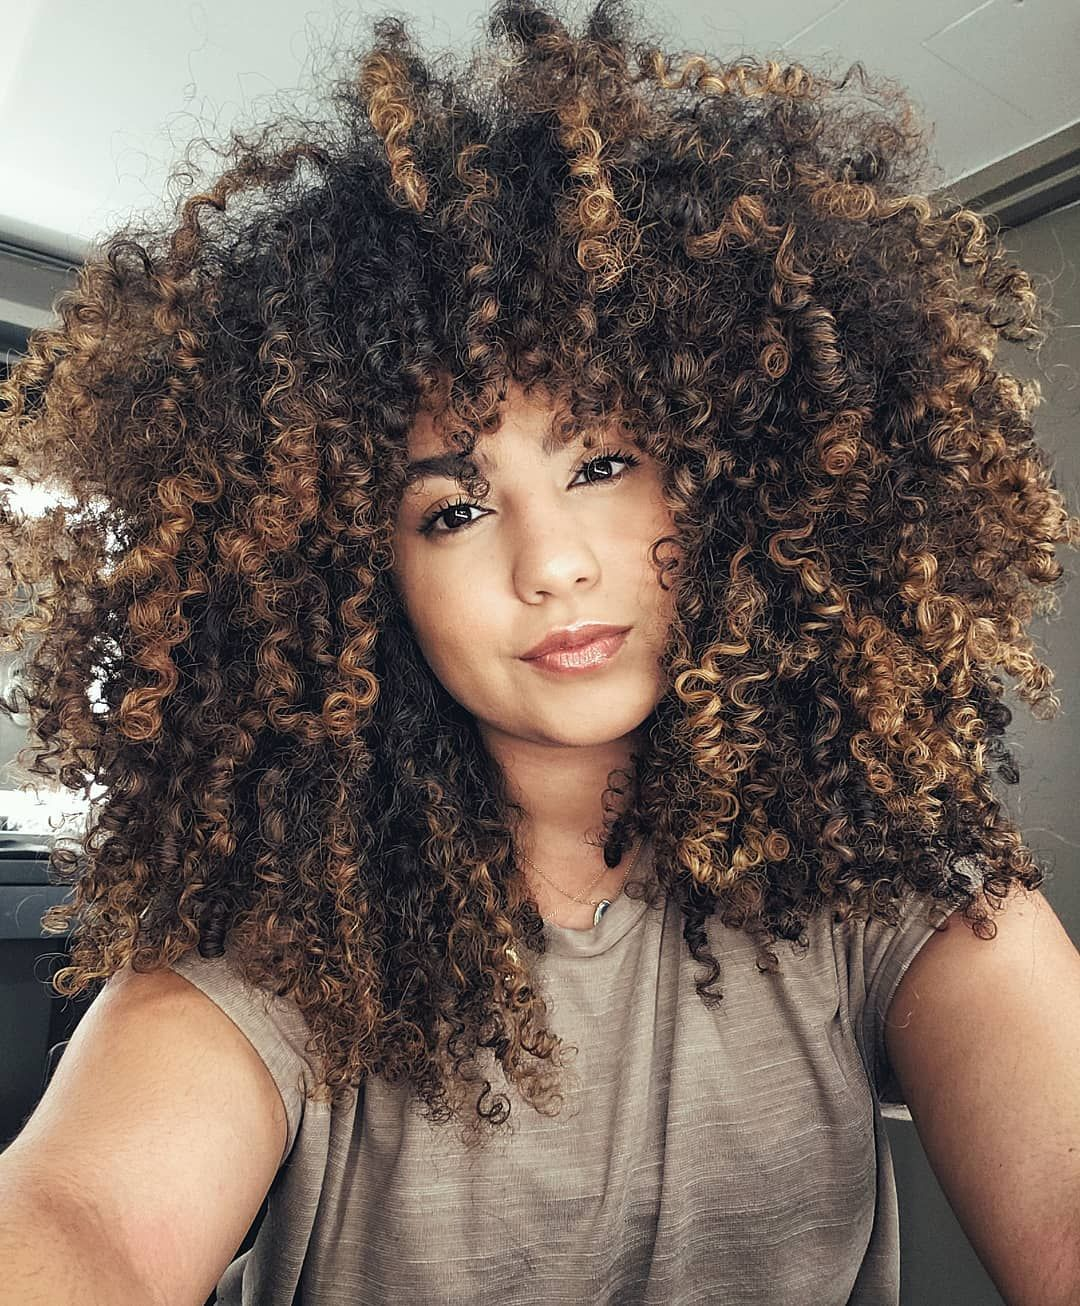 Curly Hair Care and Hairstyles for those Pinterest Worthy